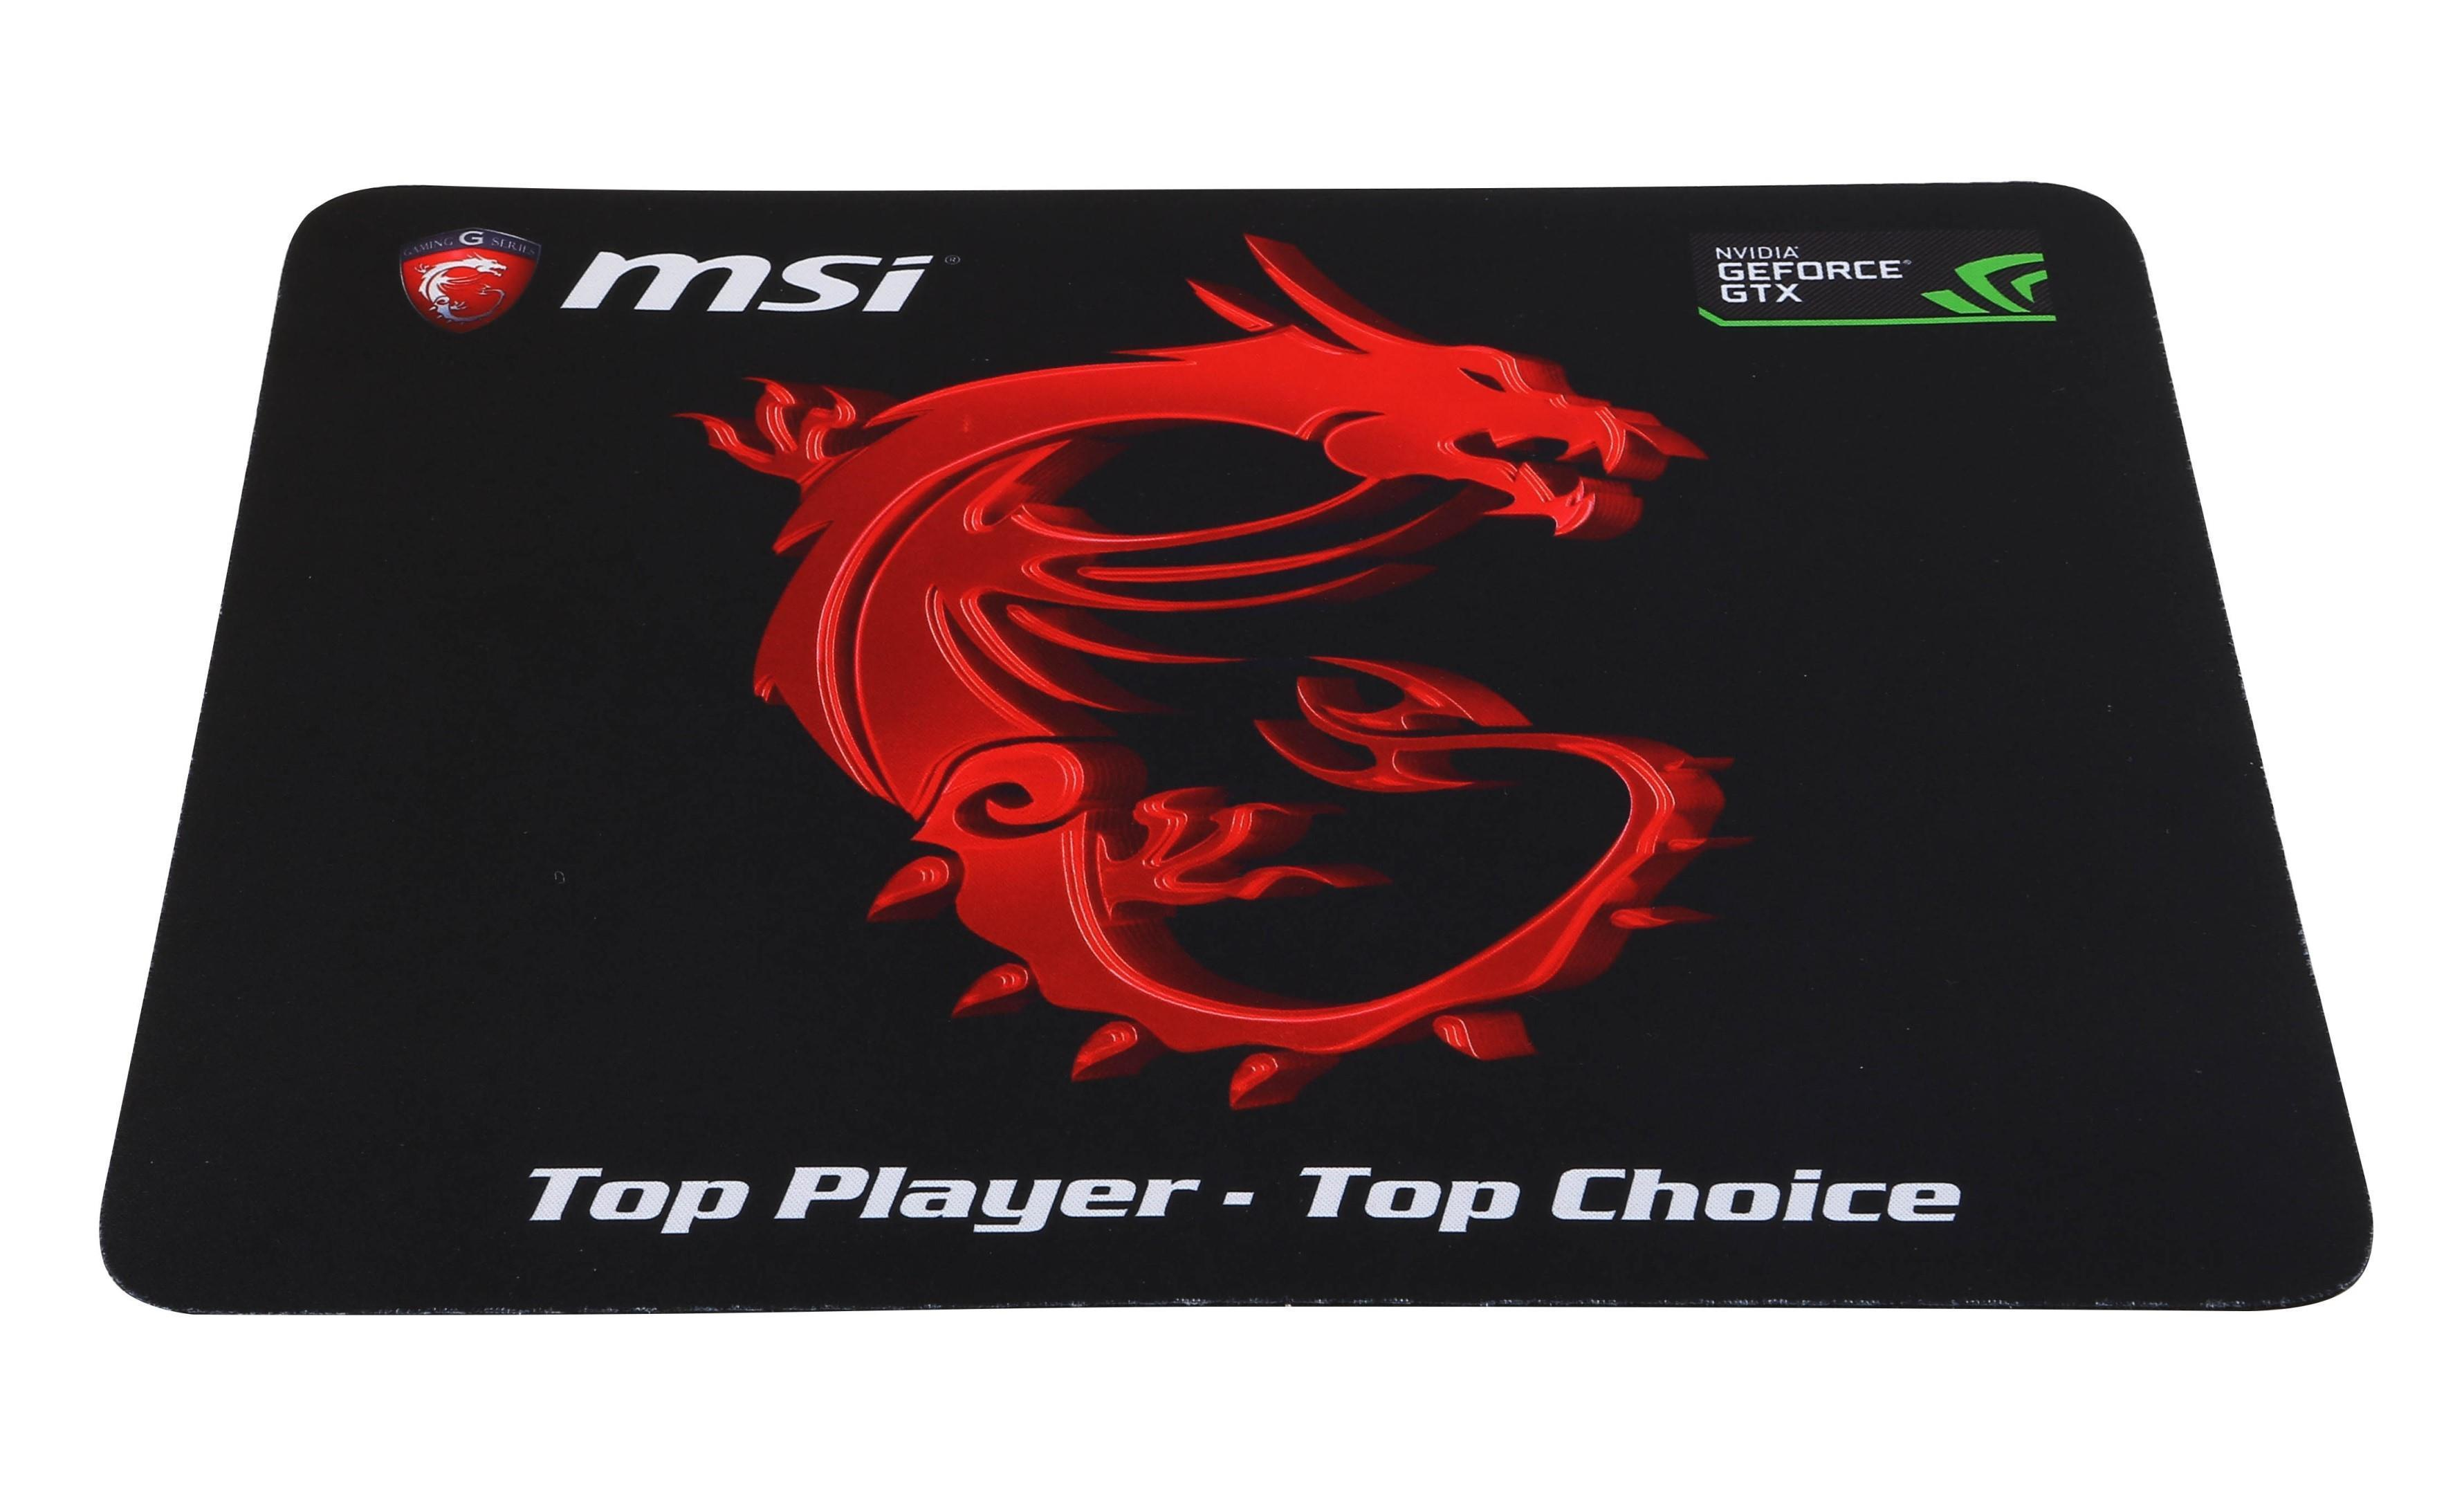 MSI Gaming Mouse Pad - Black/Red